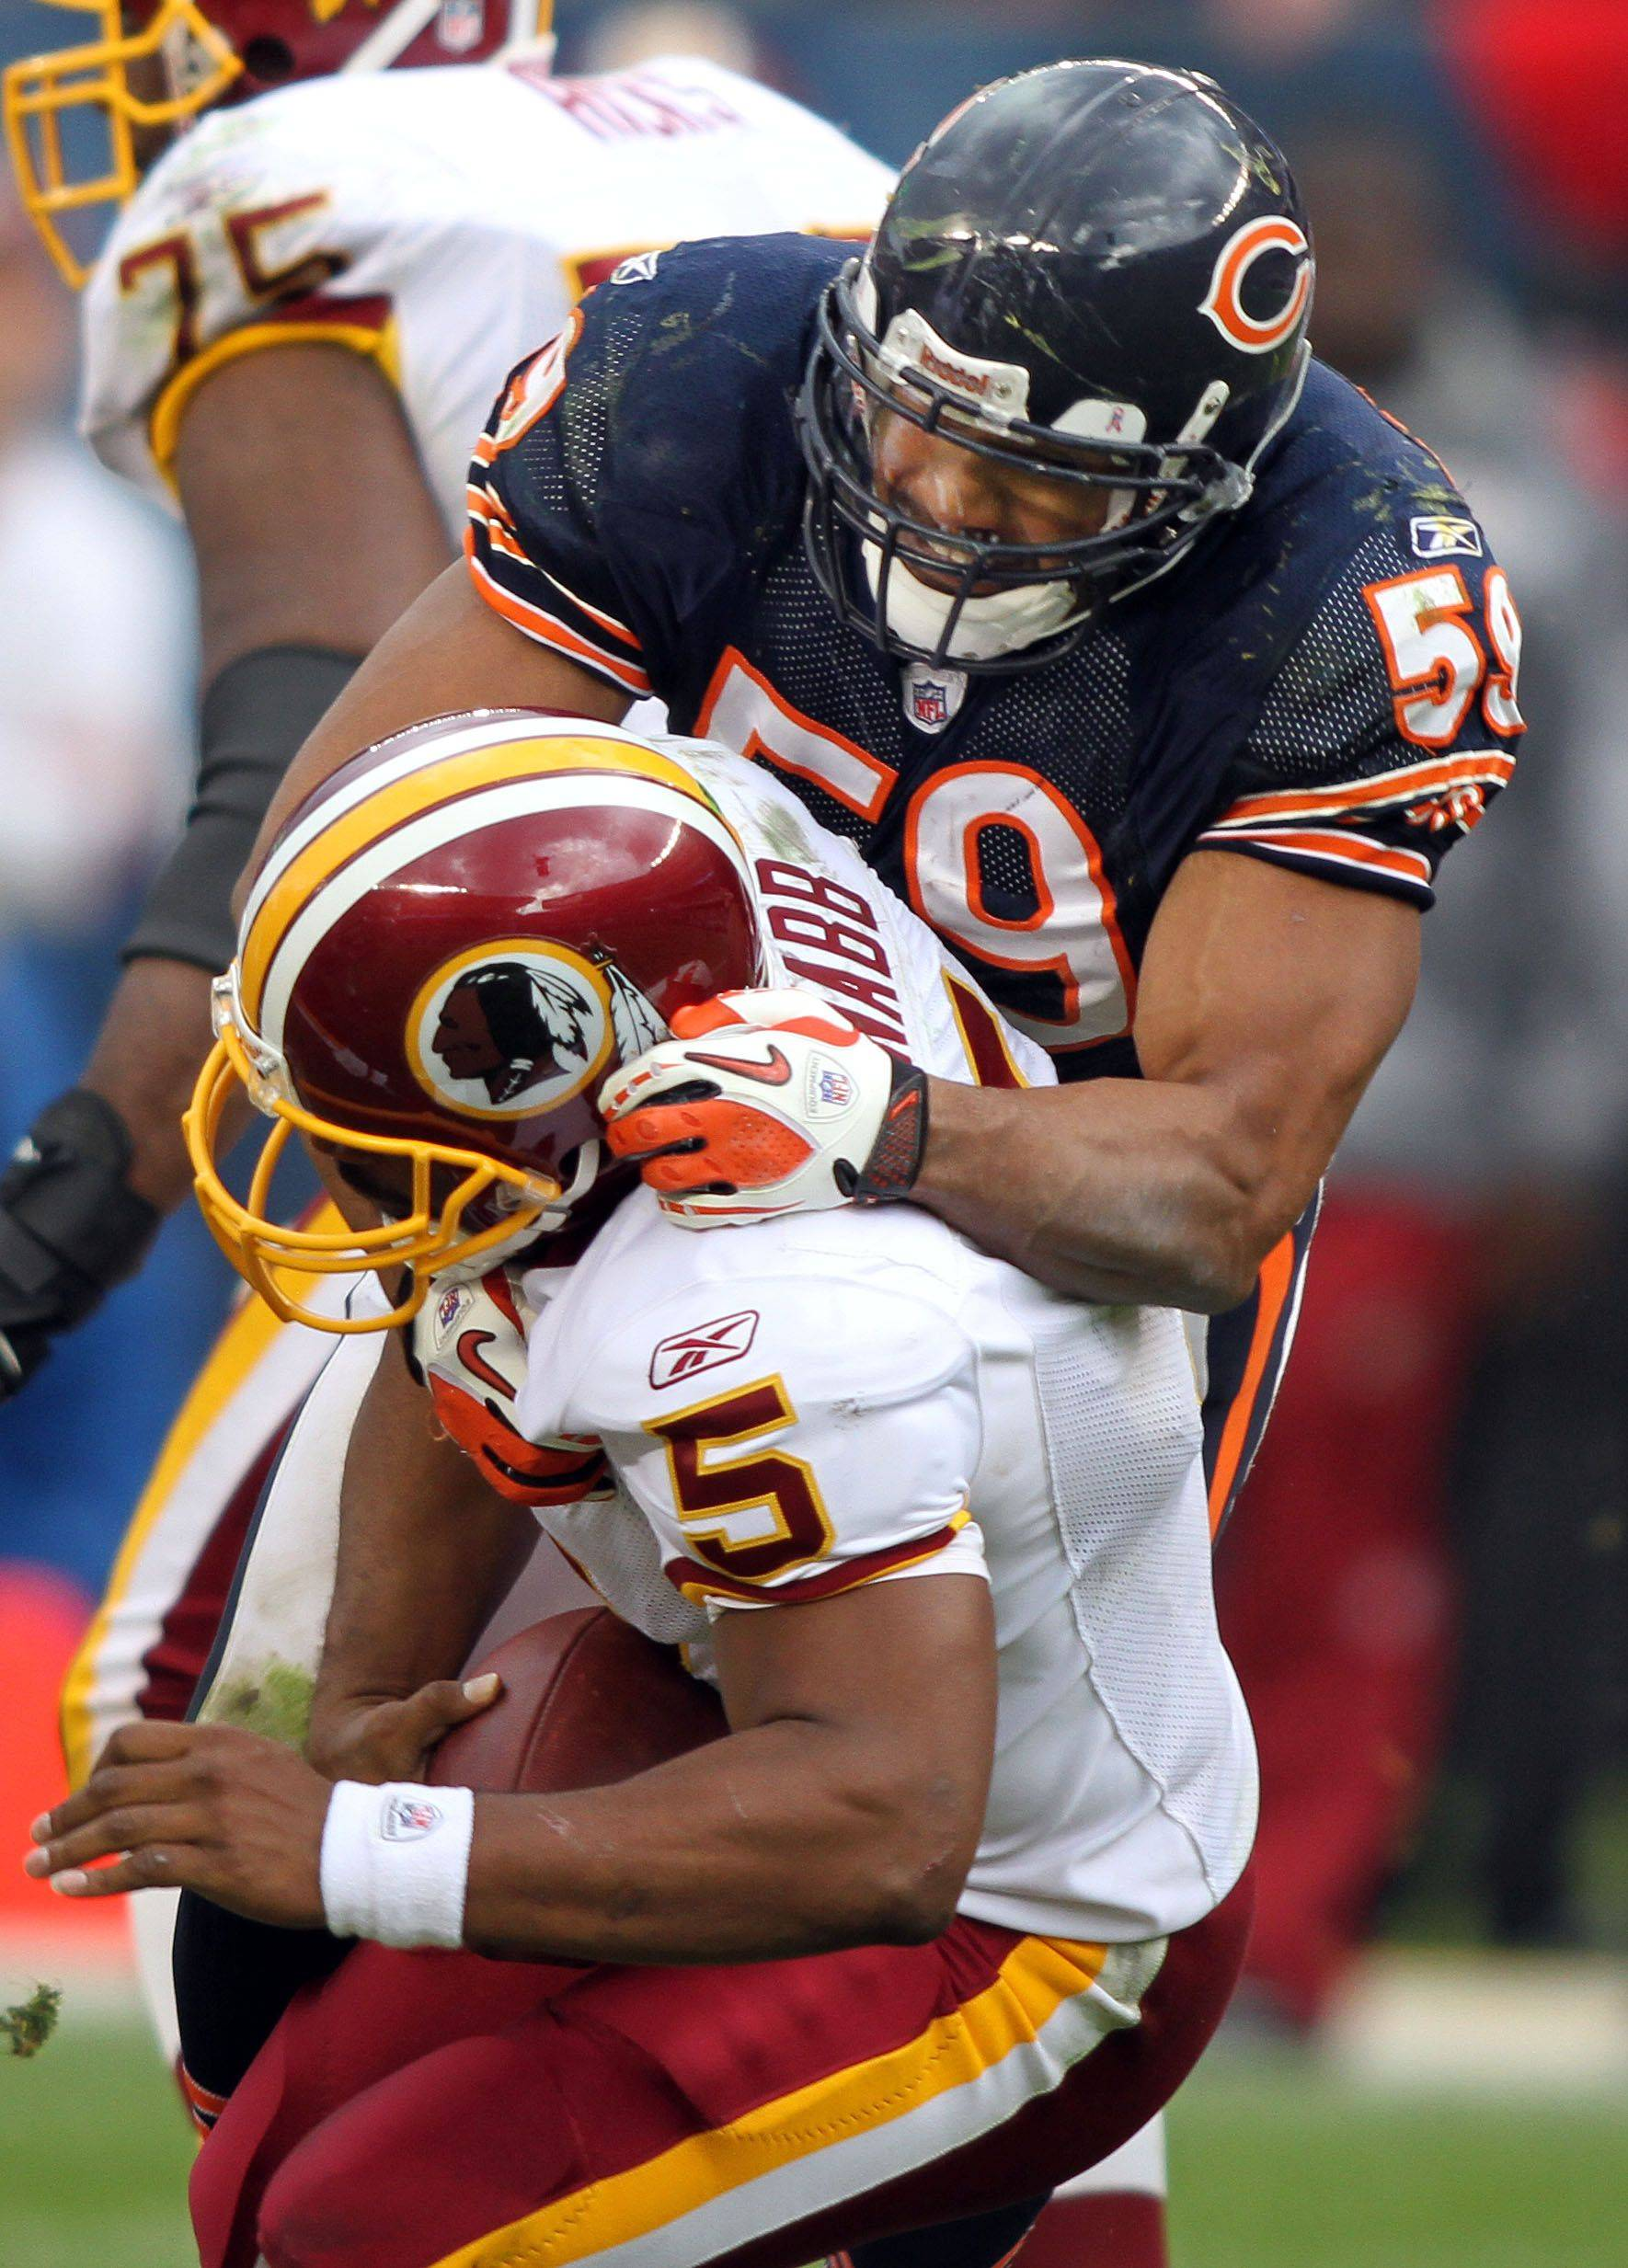 Chicago Bears linebacker Pisa Tinoisamoa sacks Washington Redskins quarterback Donovan McNabb during the Bears' 14-17 loss to the Redskins.